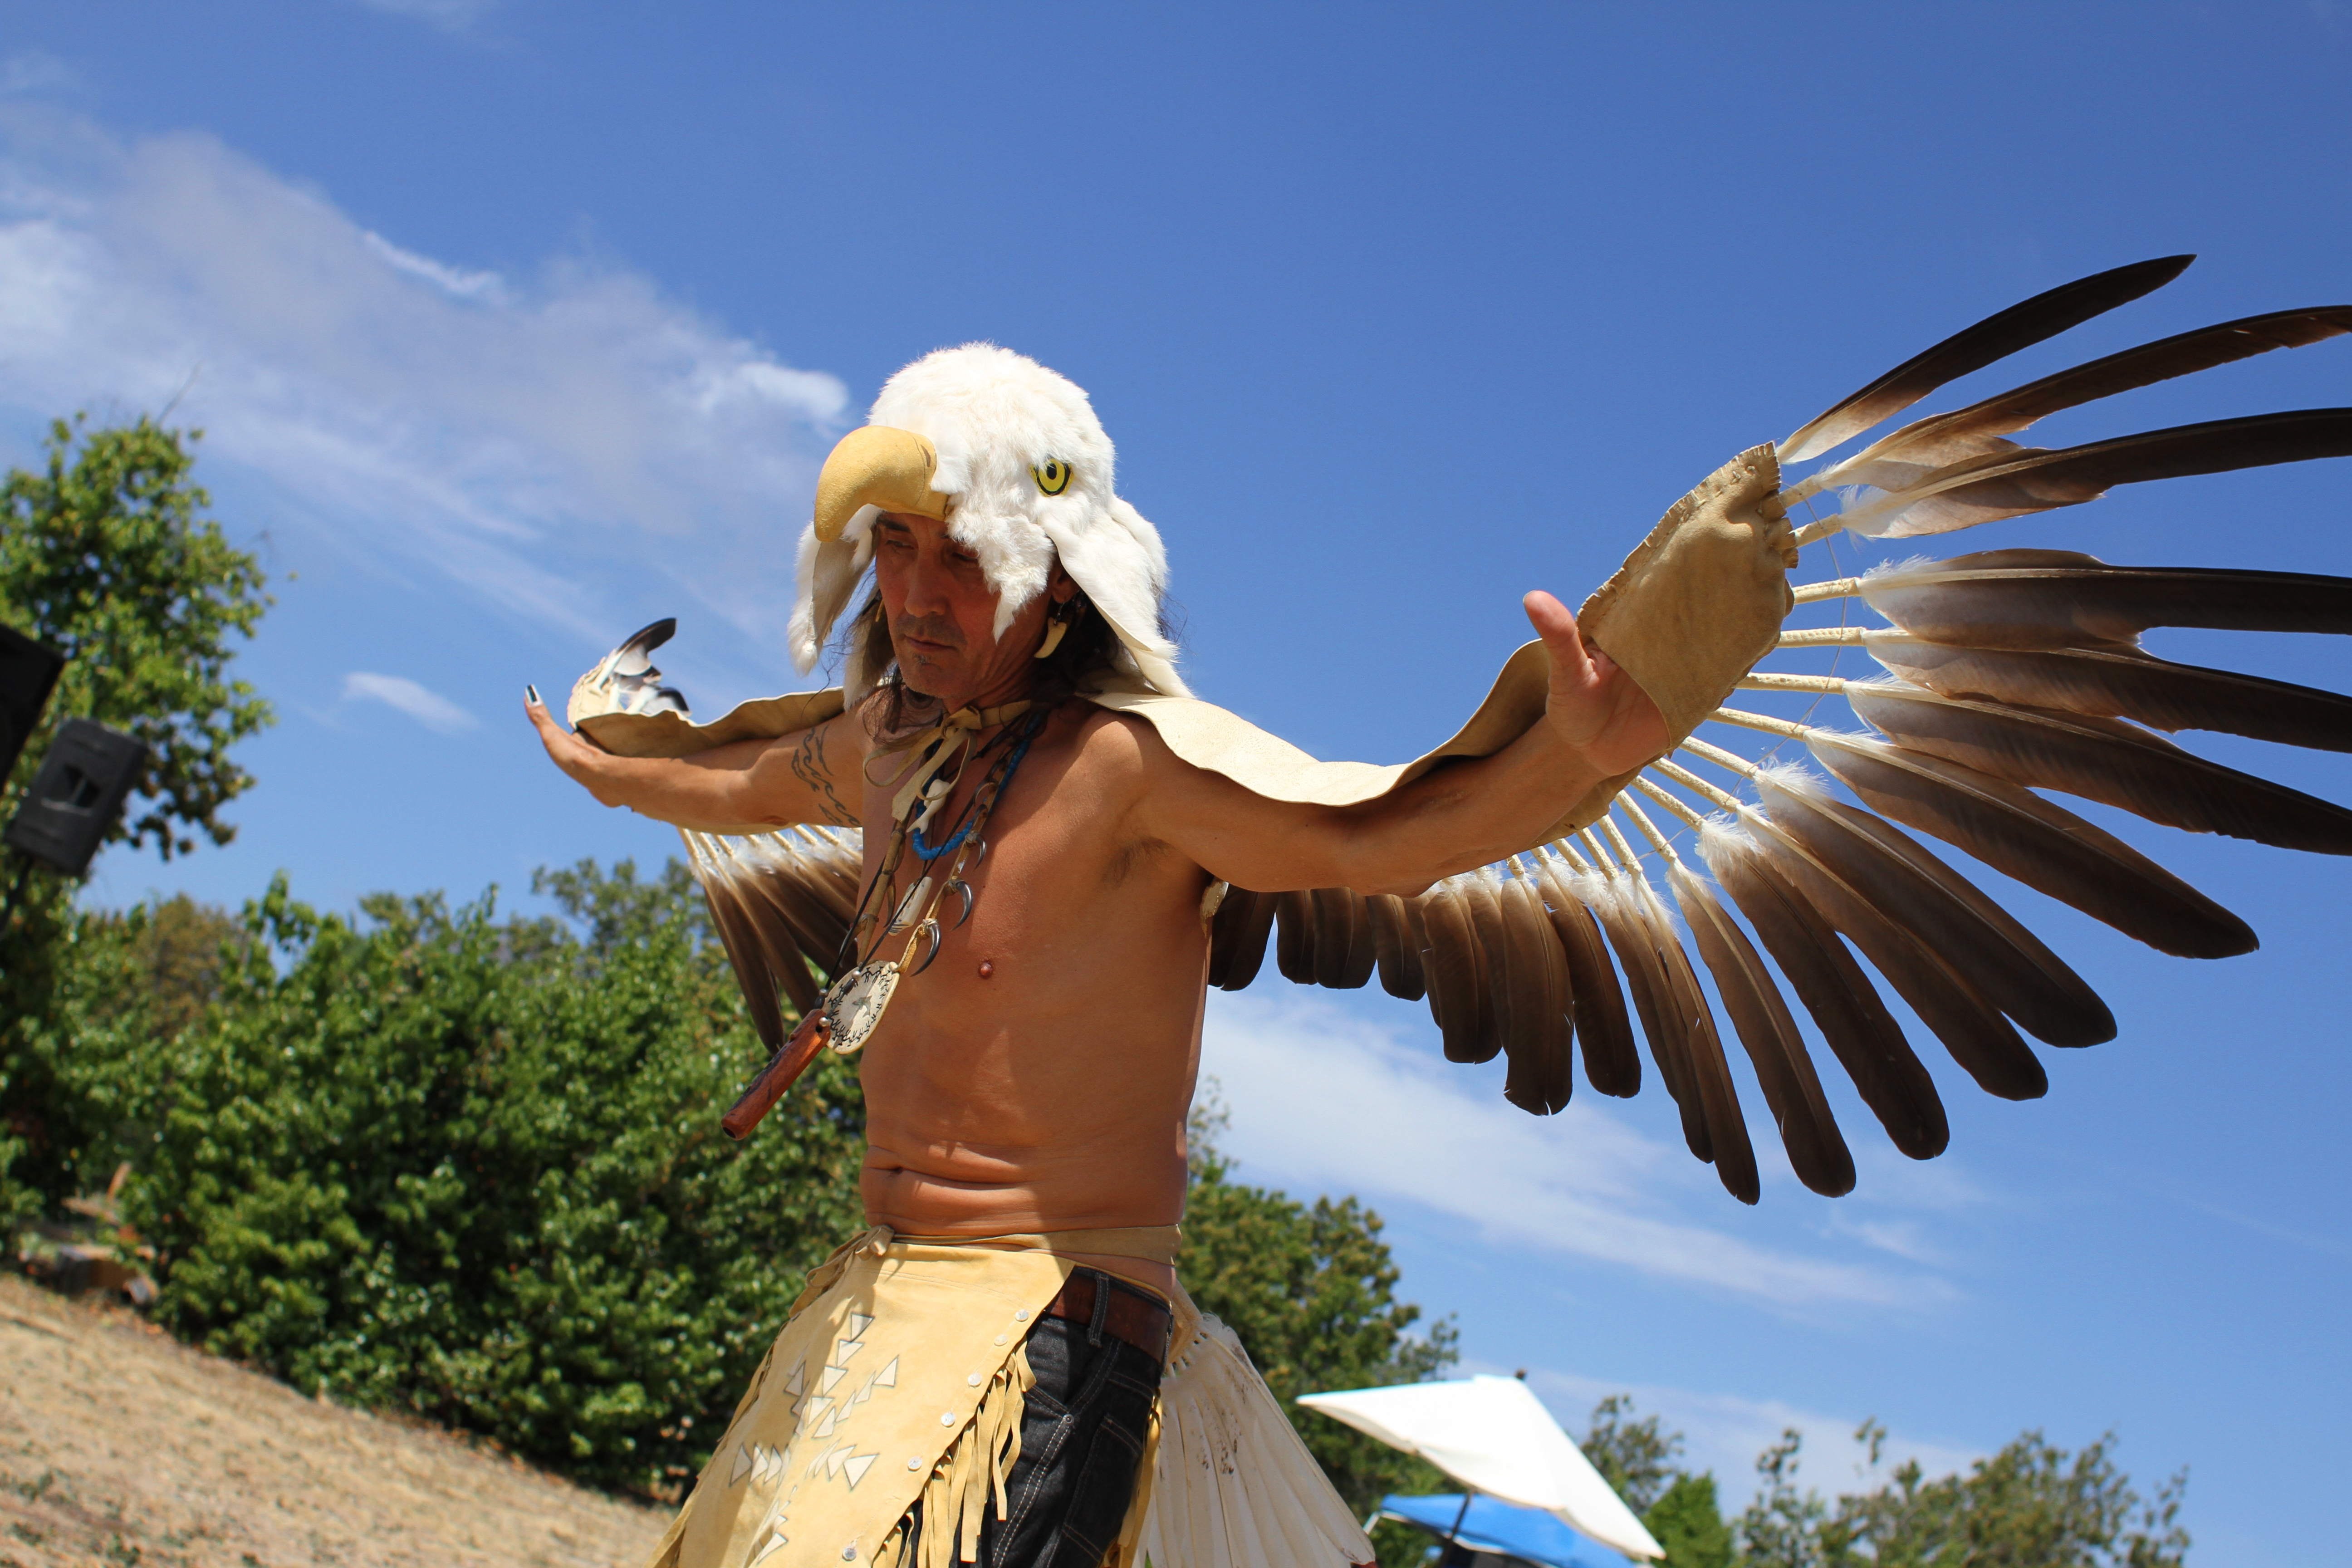 Steve Garcia of San Diego performs a traditional eagle dance at the event. Photo by Andrea Swayne